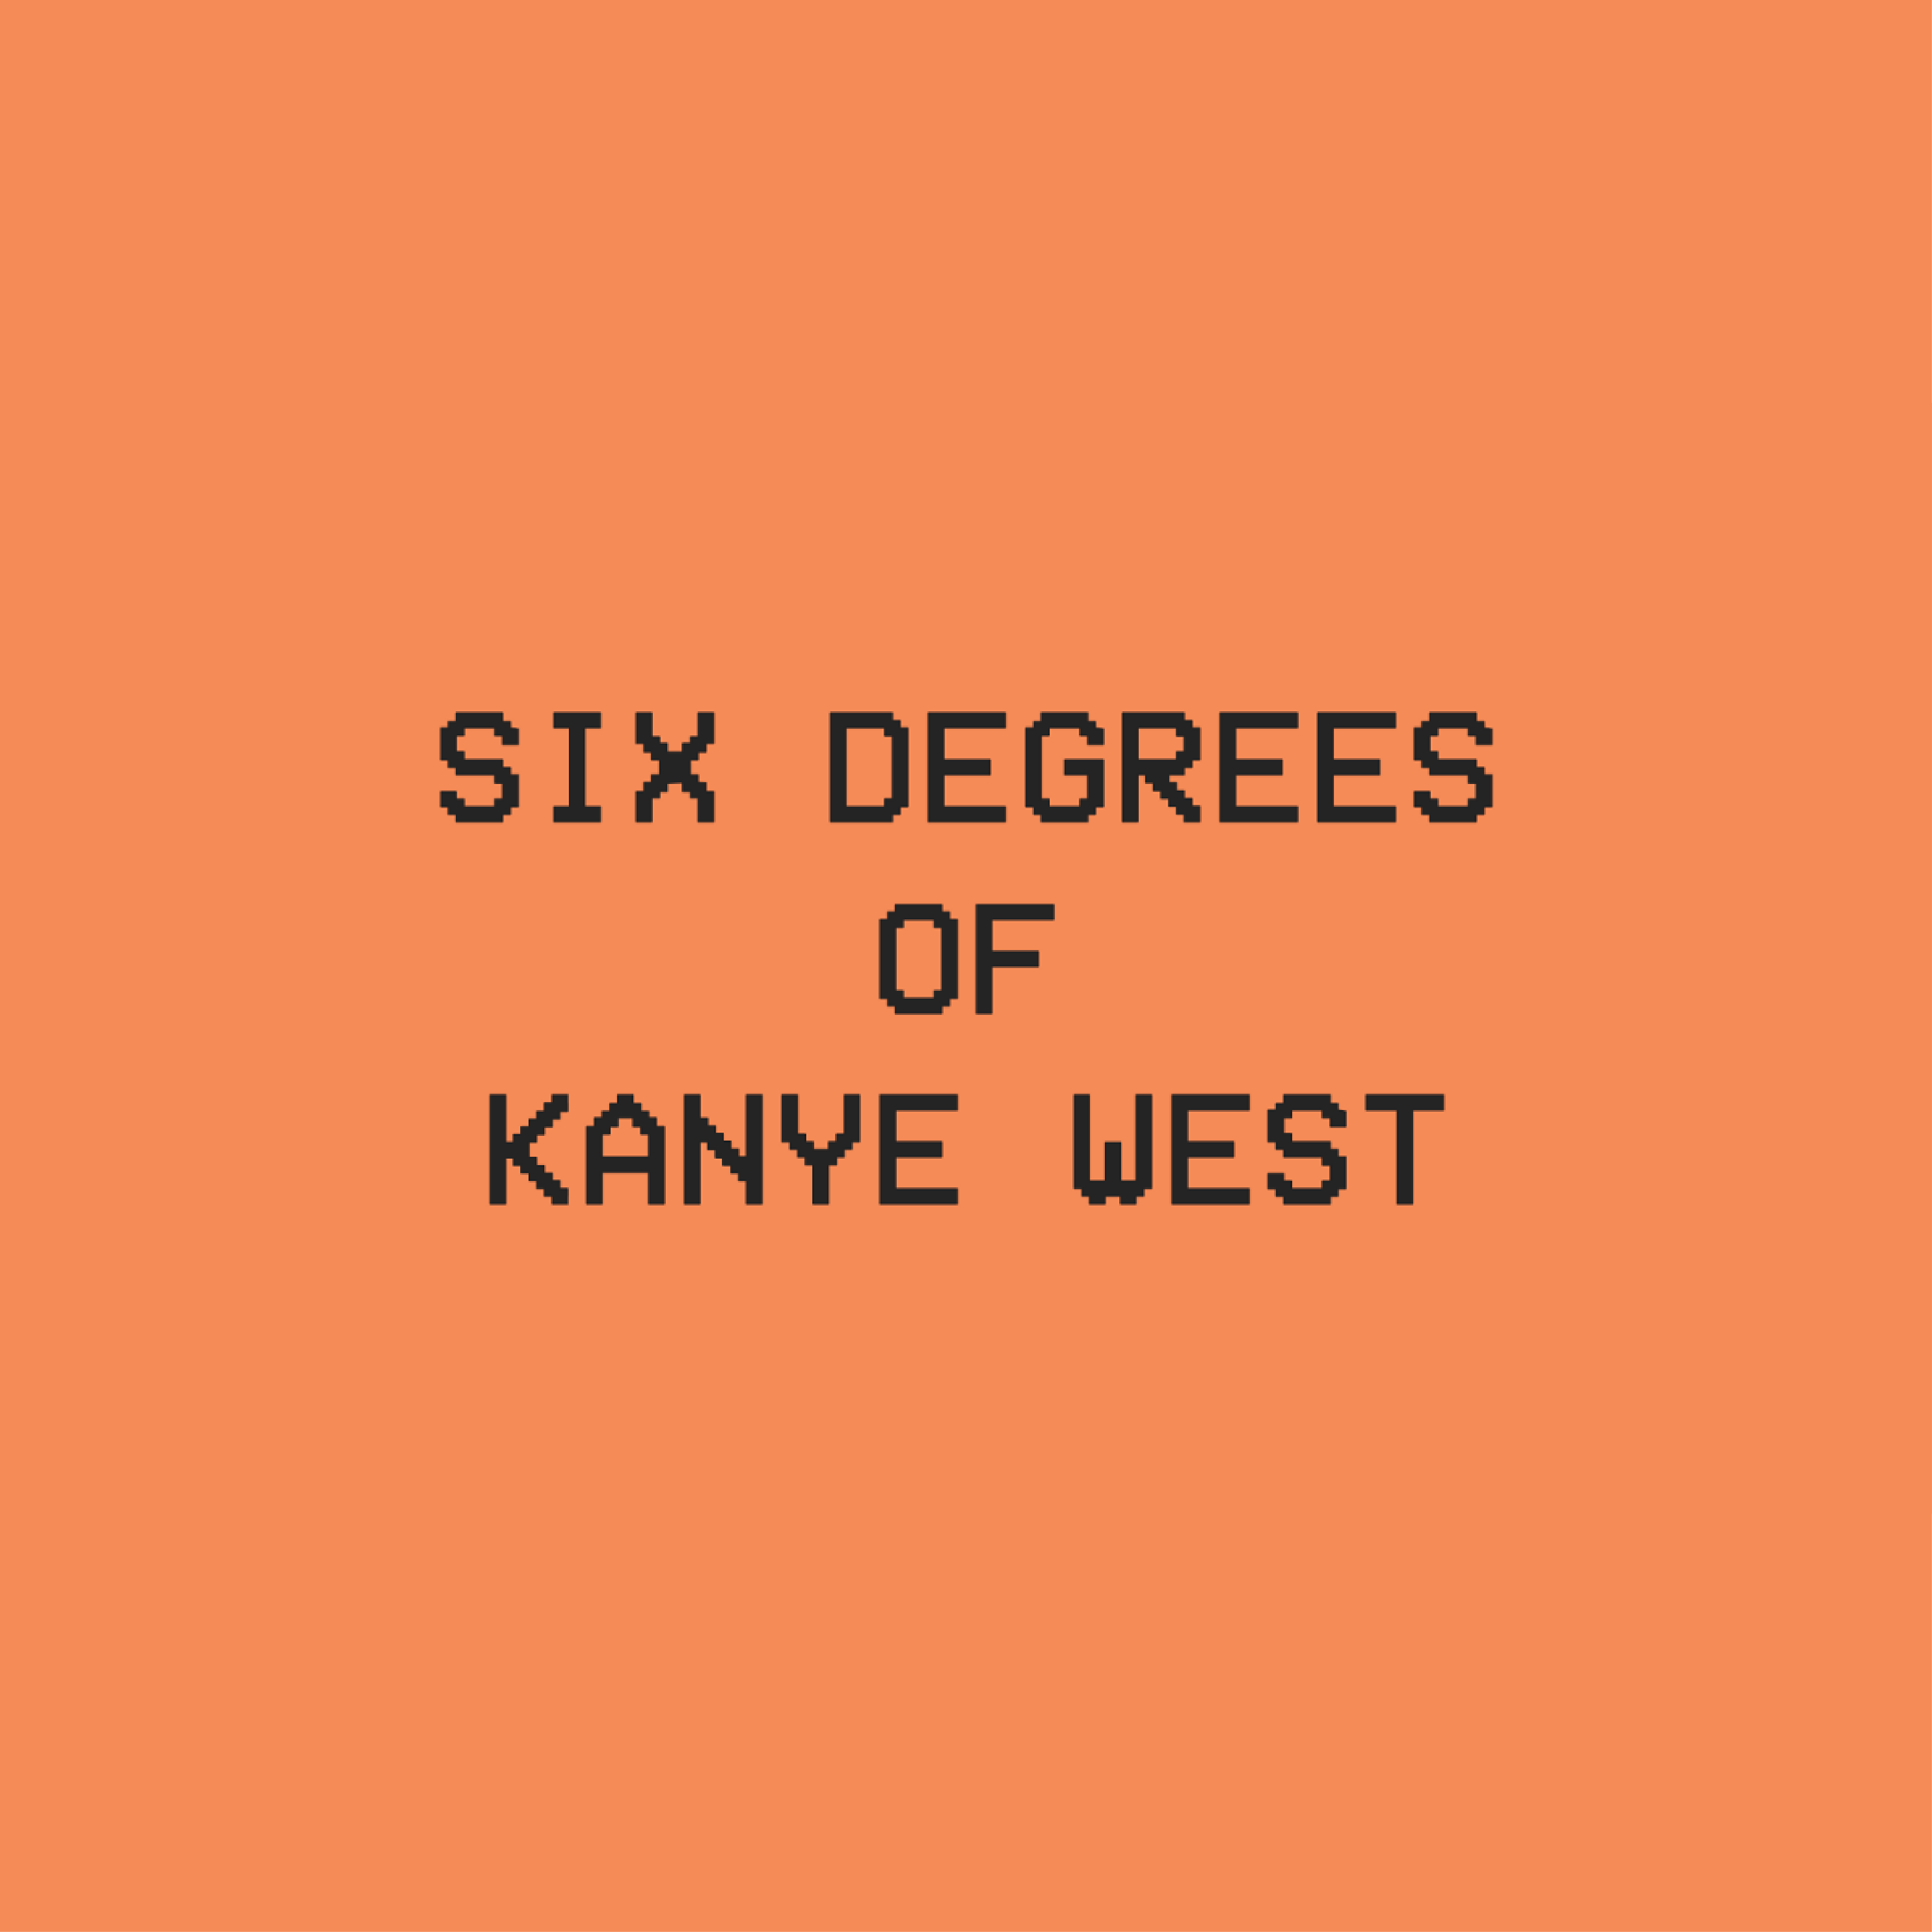 thumbnail for six-degrees-of-kanye-west/image.png